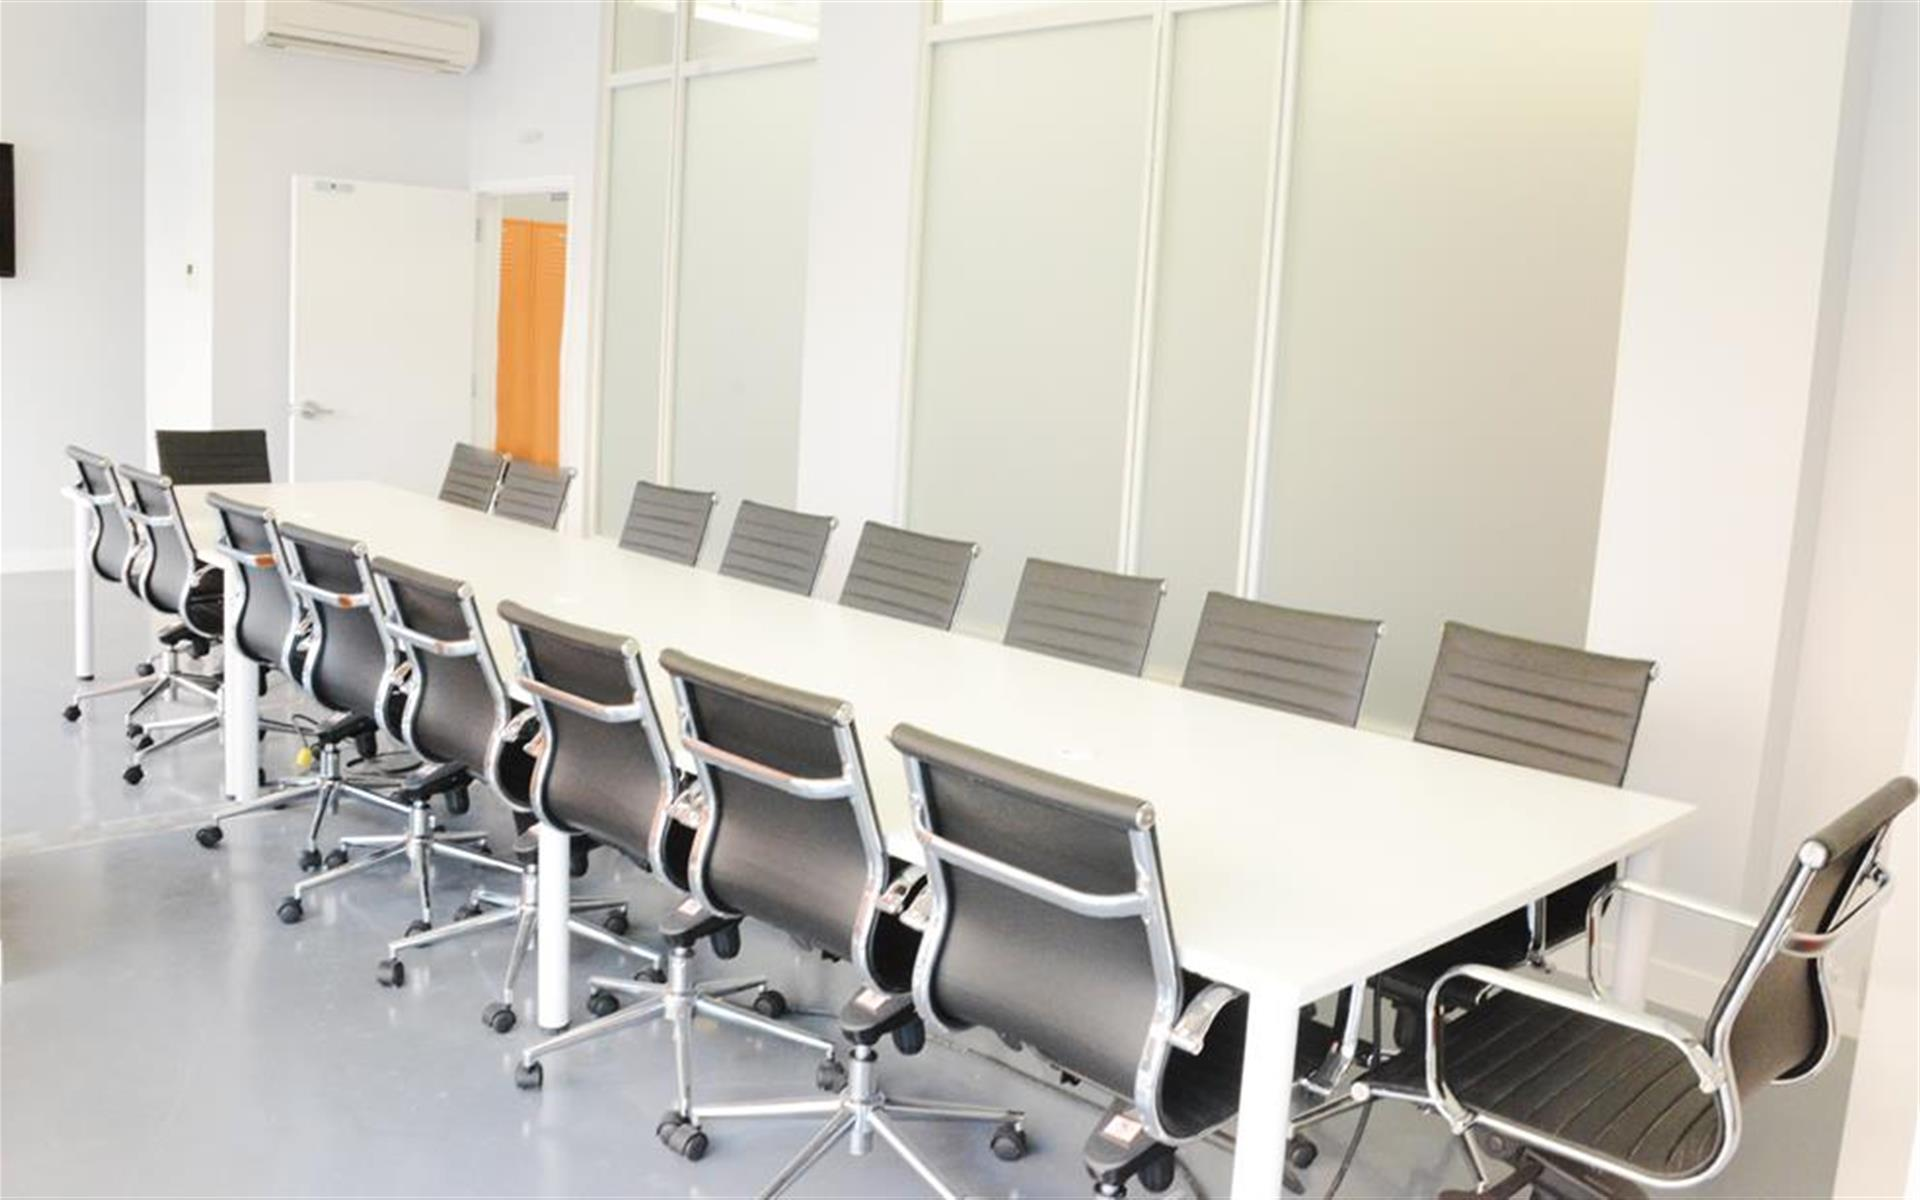 TEEM Coworking - Harlem NYC - Conference Room